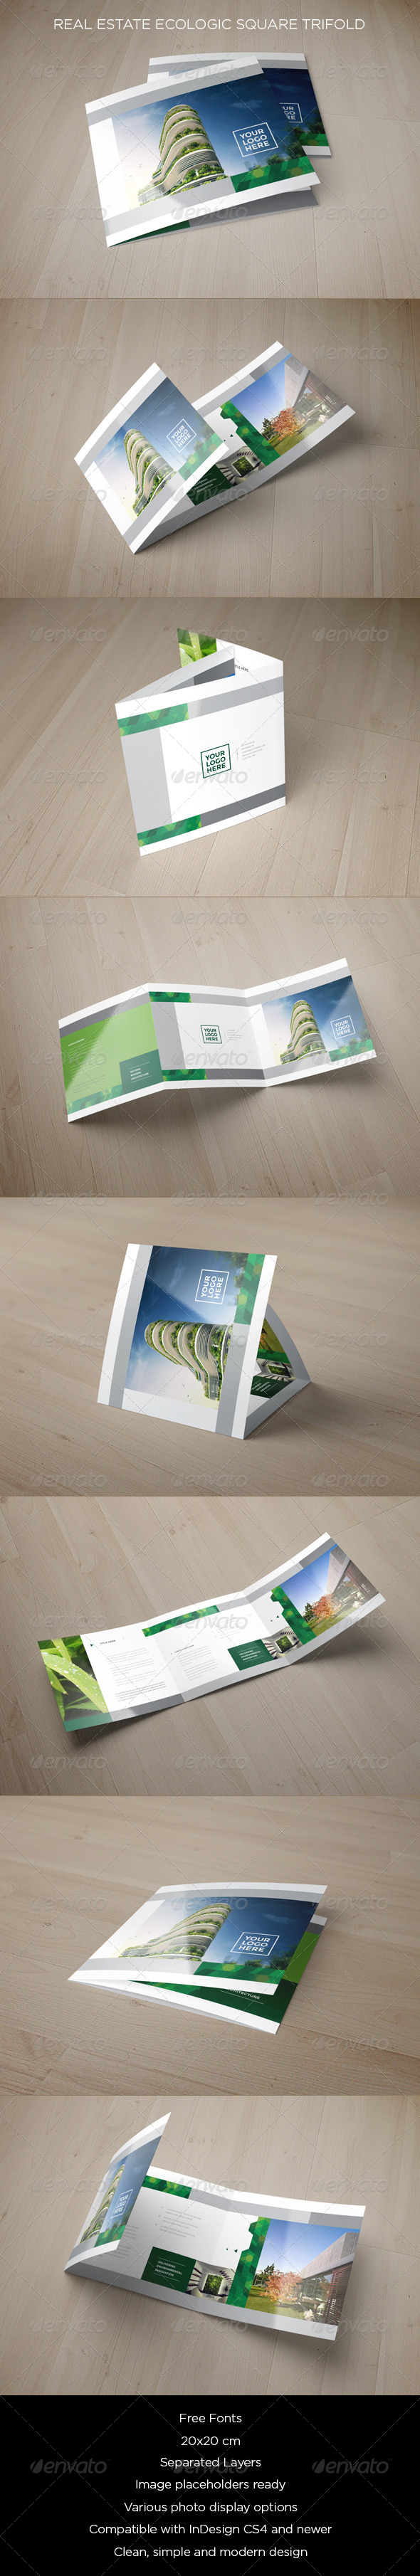 GraphicRiver Real Estate Ecologic Square Trifold 8659439